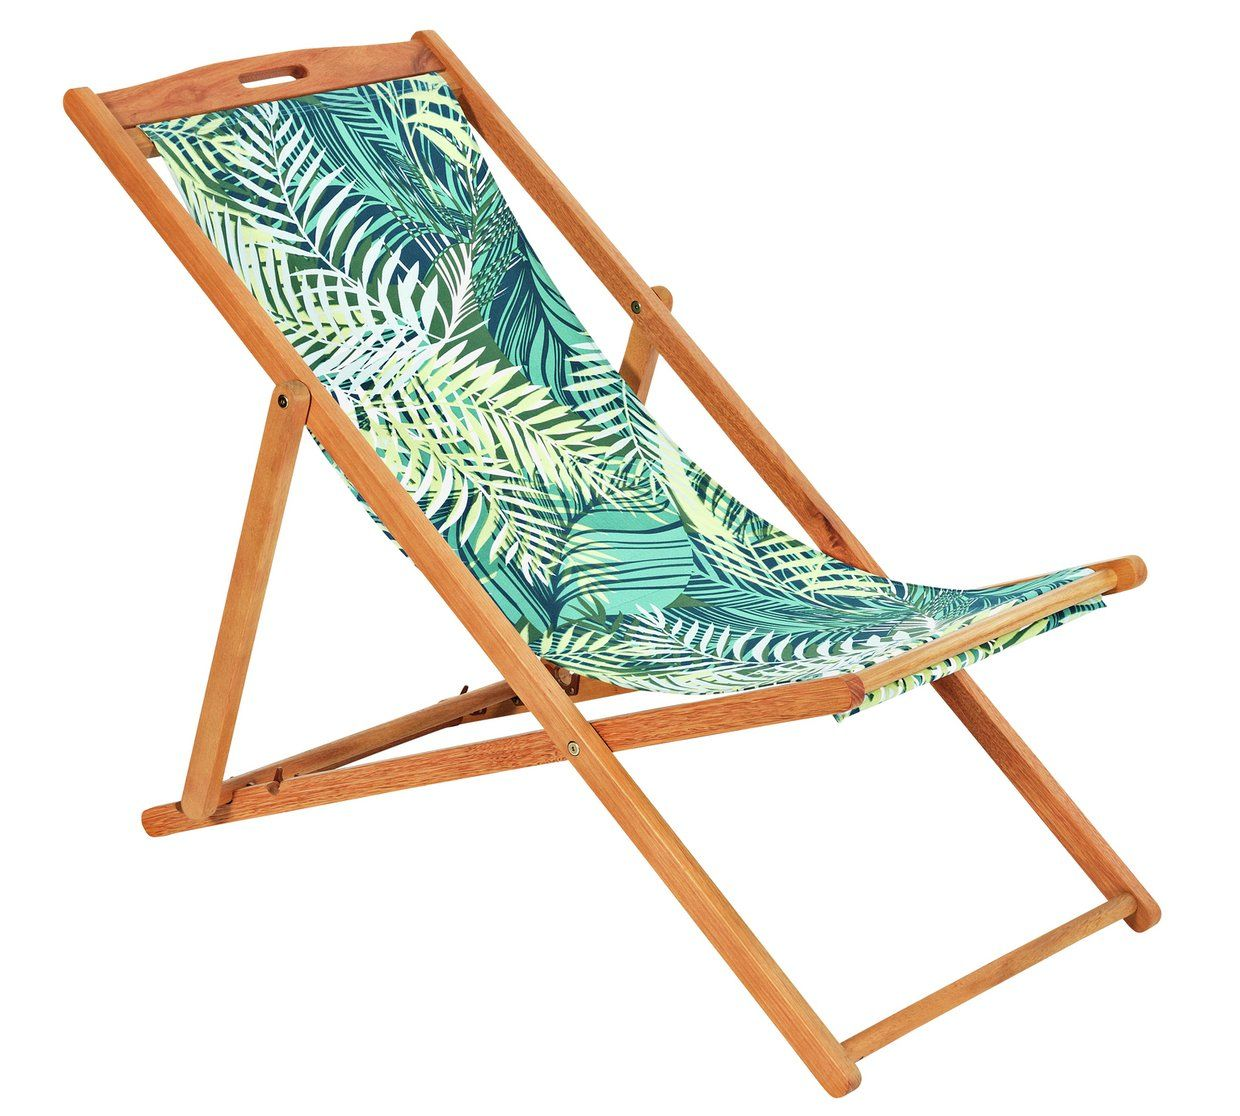 Buy HOME Deck Chair Palm Garden chairs and sun